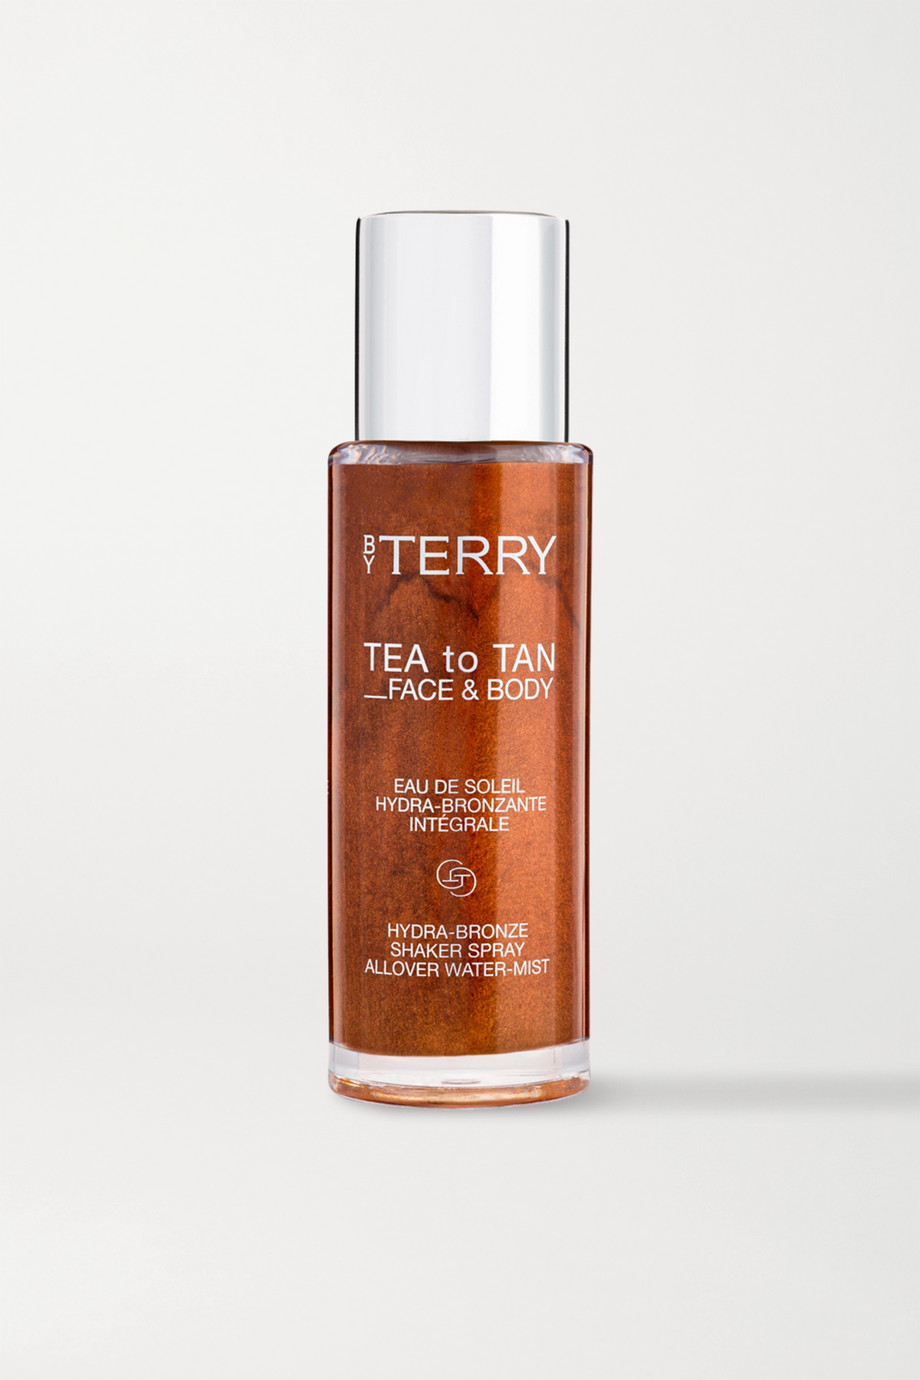 BY TERRY MTG Tea to Tan + PV Set